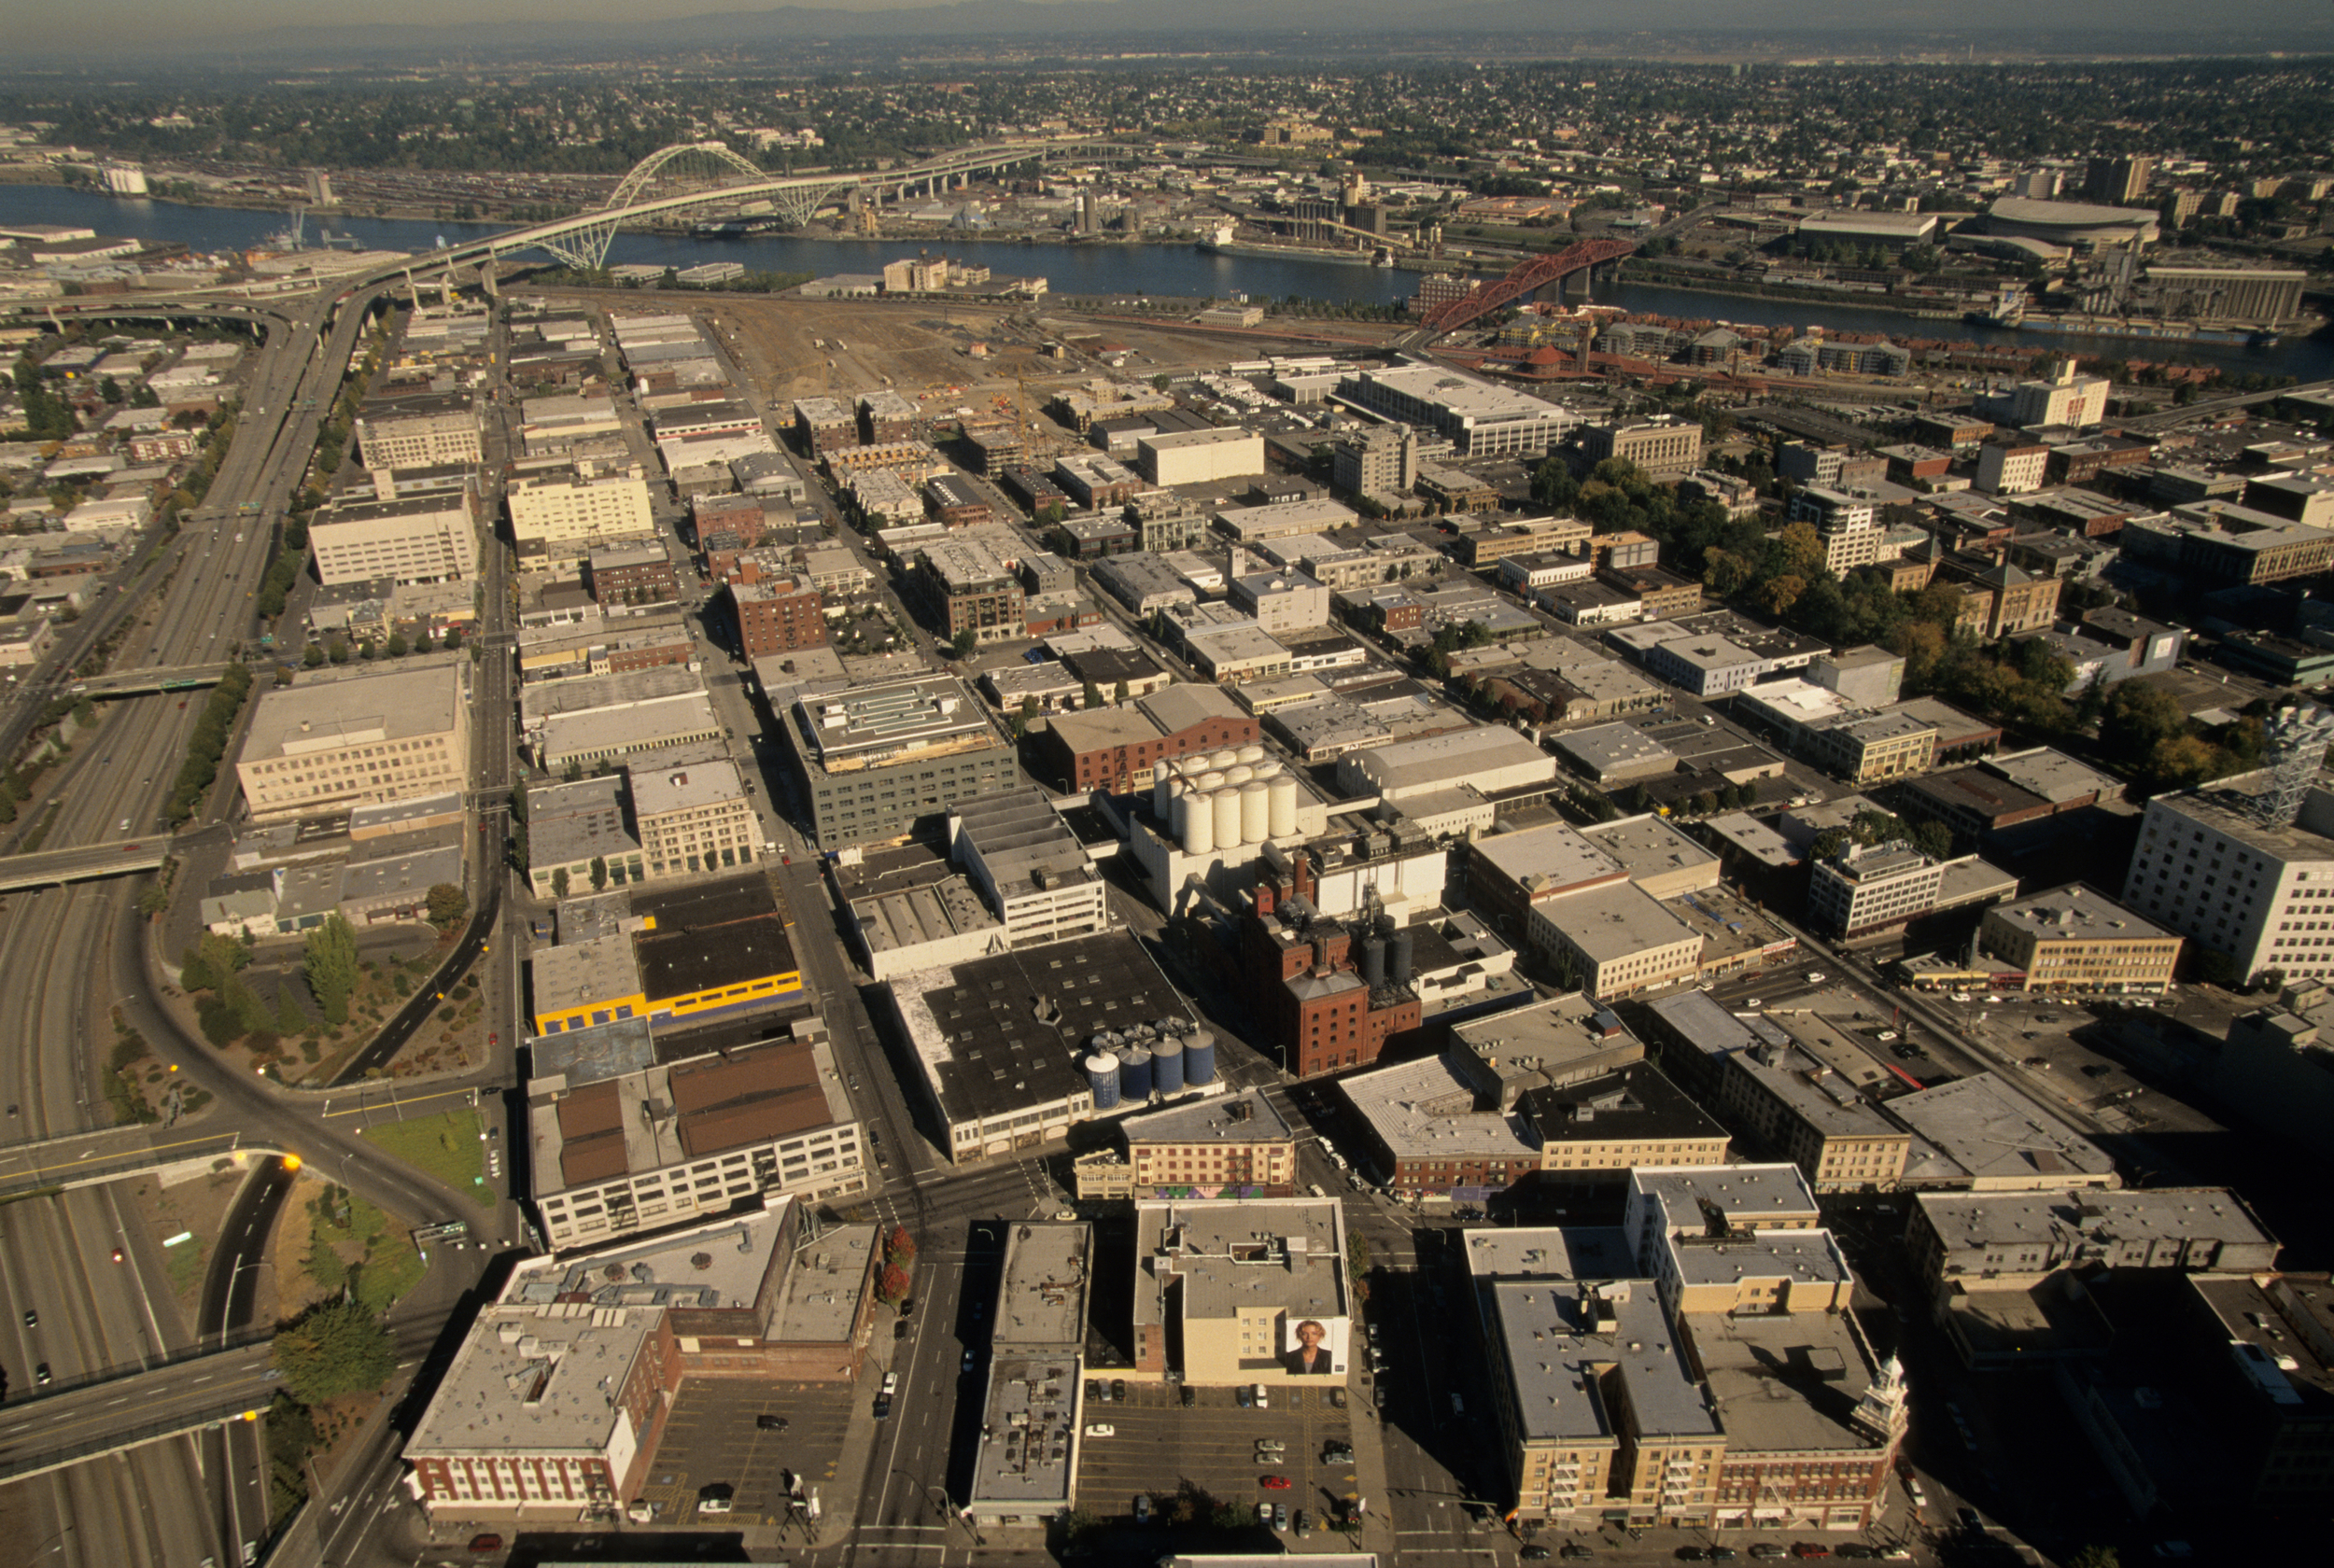 Adaptive reuse of old warehouses continued, but a checkerboard of new city blocks began to sprout mid and high-rise structures. The Northwest Triangle was becoming the Pearl District.Photo by Bruce Forster©